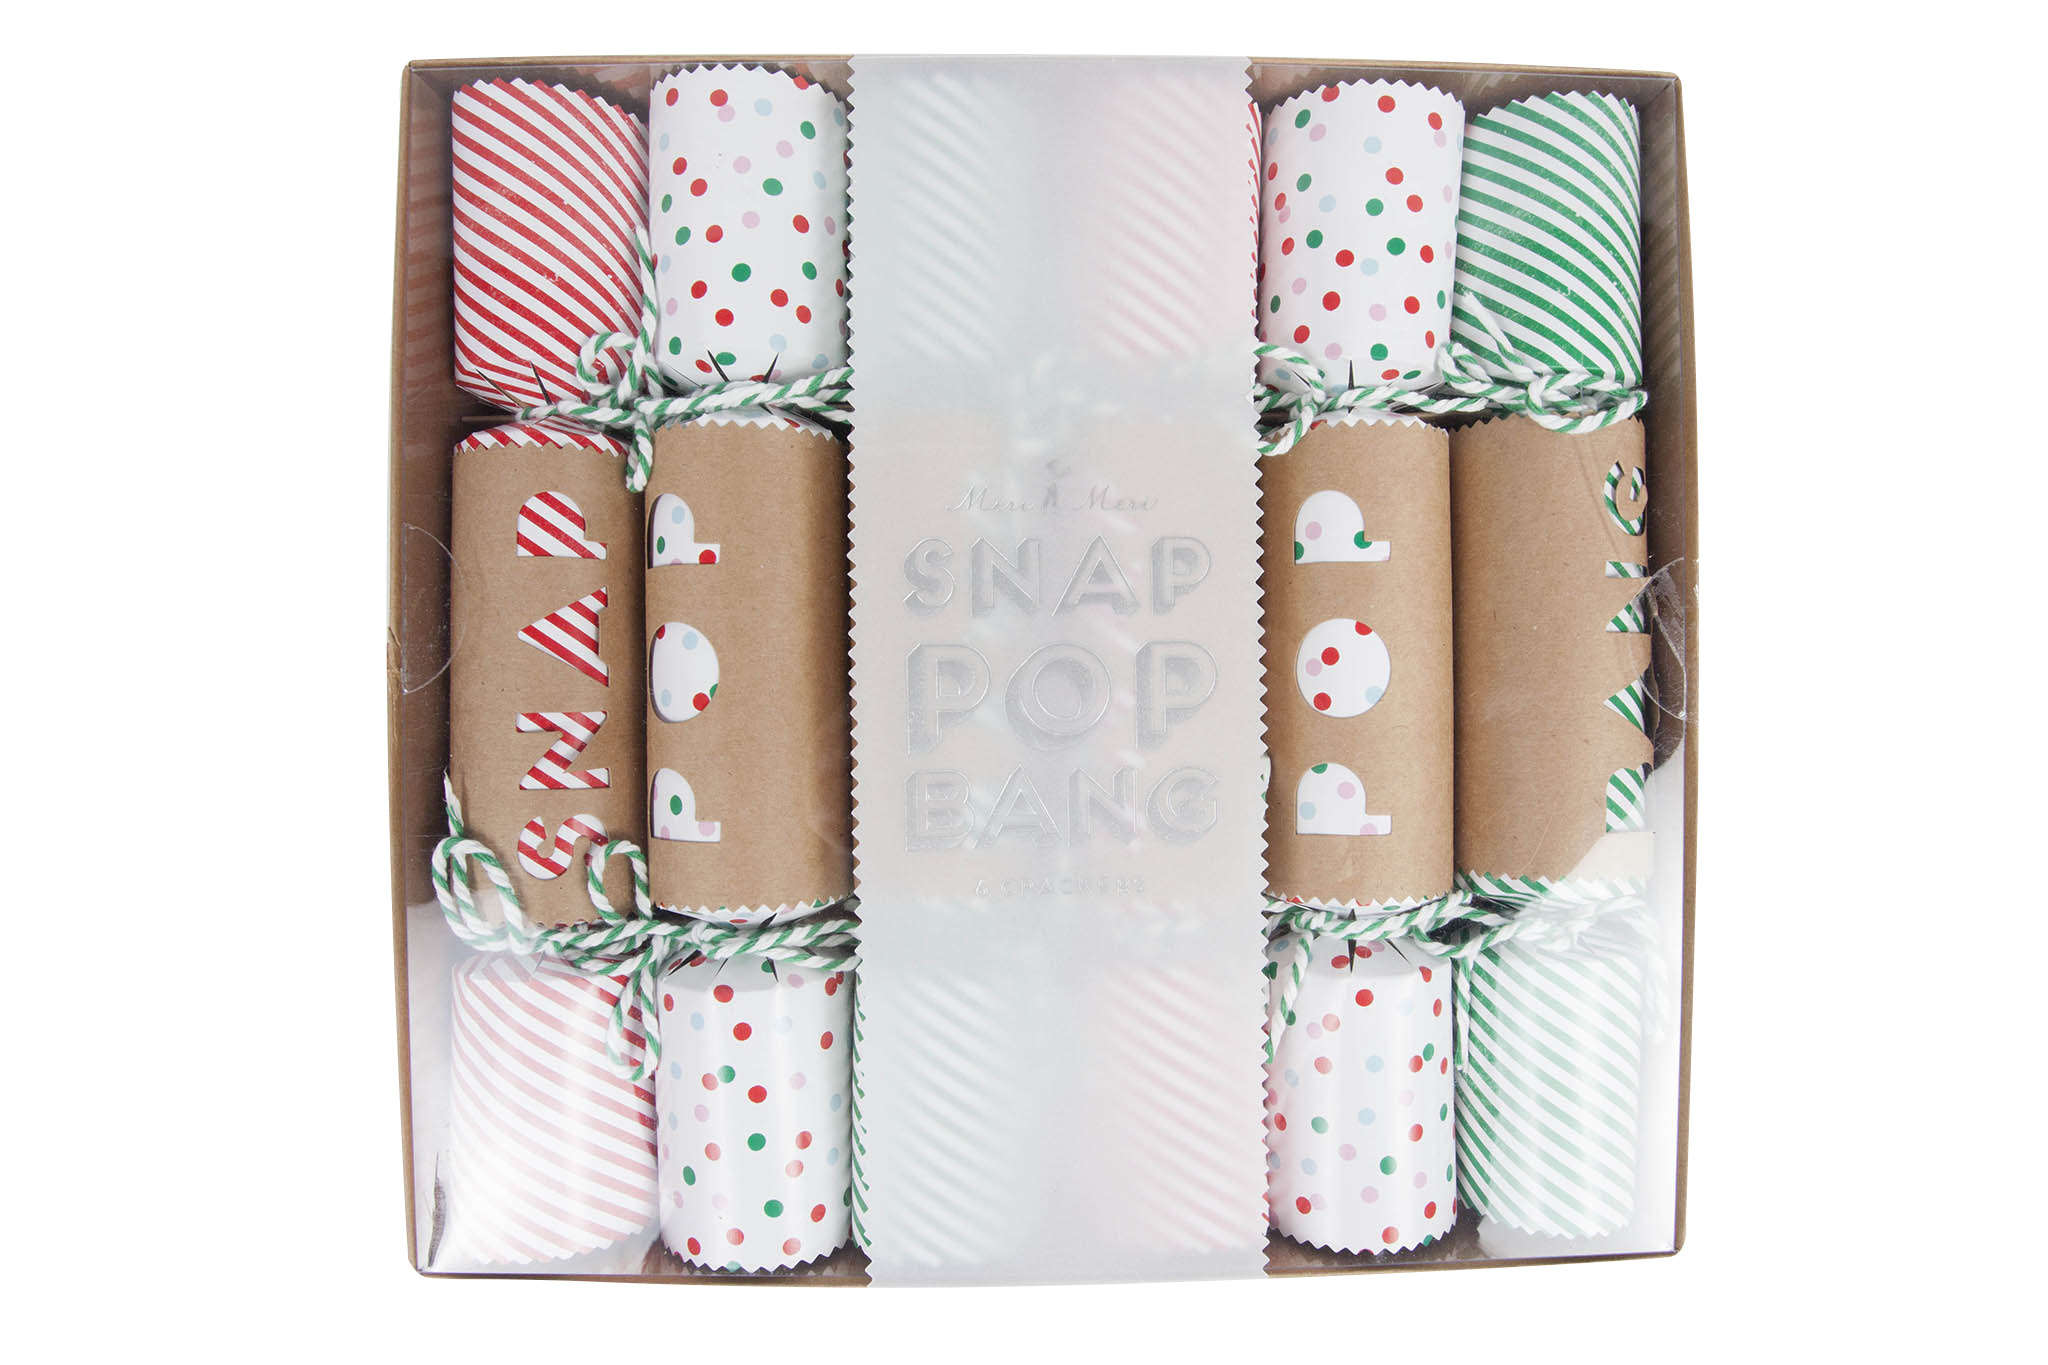 Stylish Christmas crackers (2013)